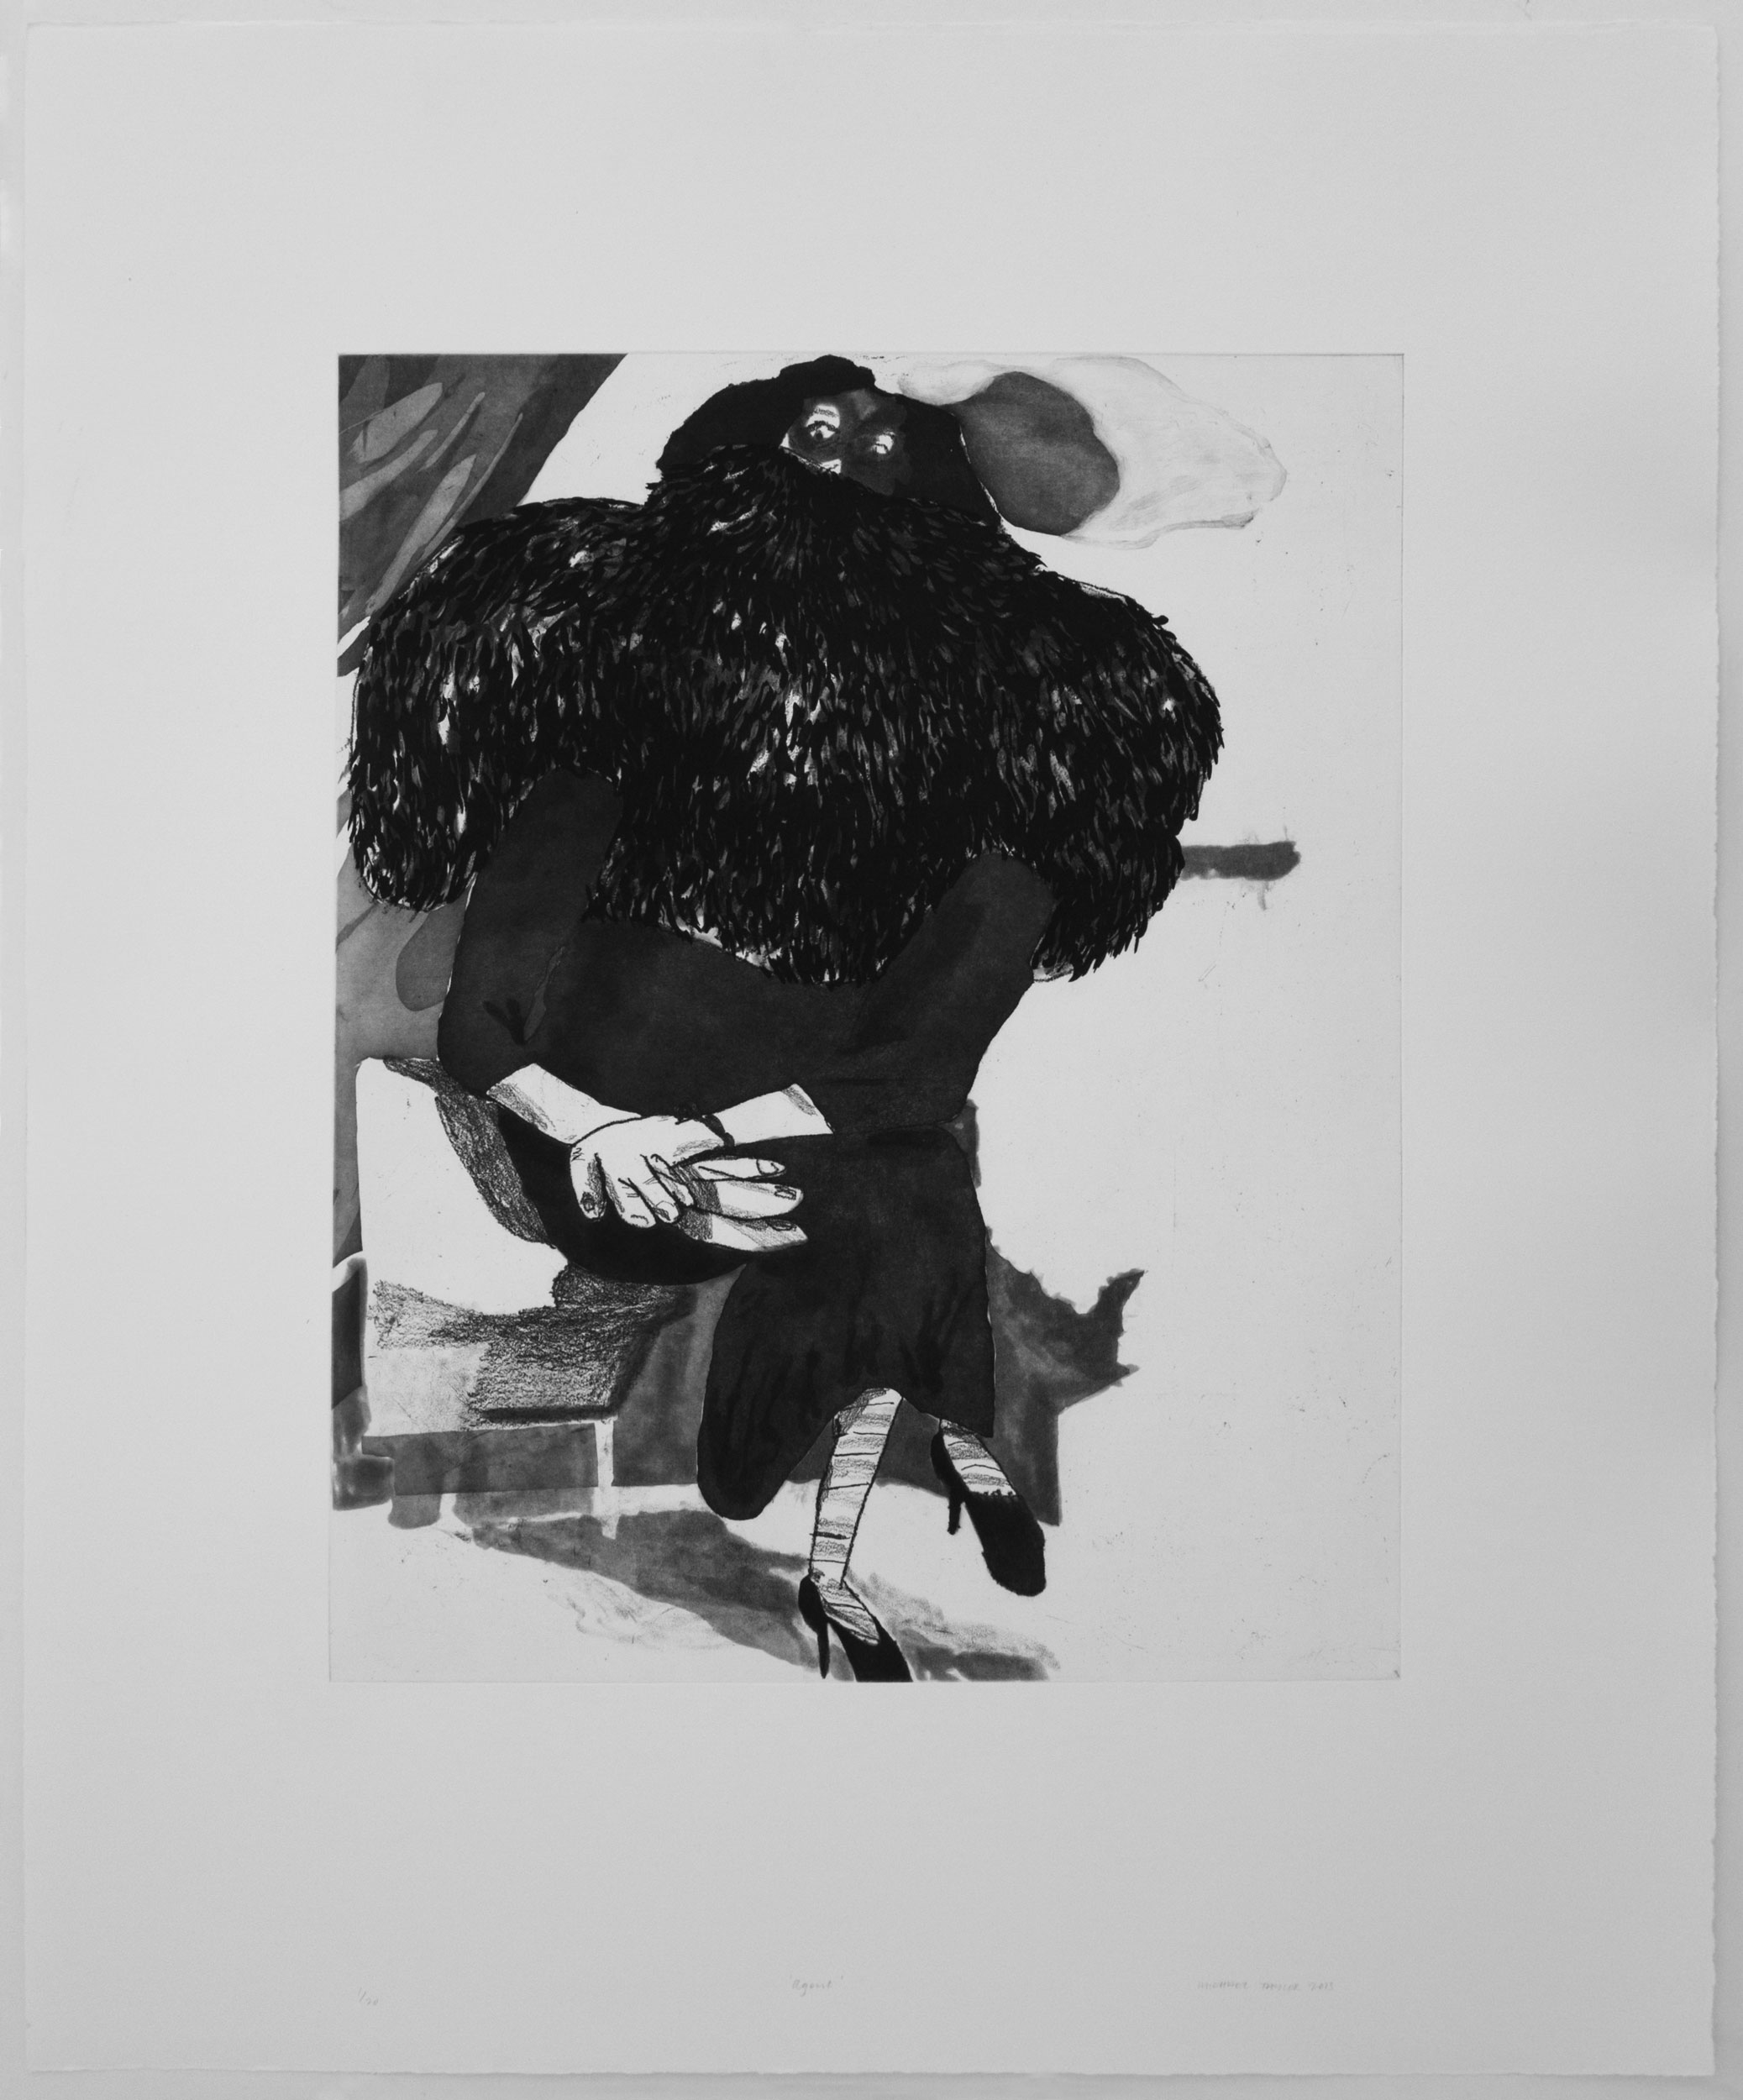 Michael Taylor, Agent, Prints, Etchings